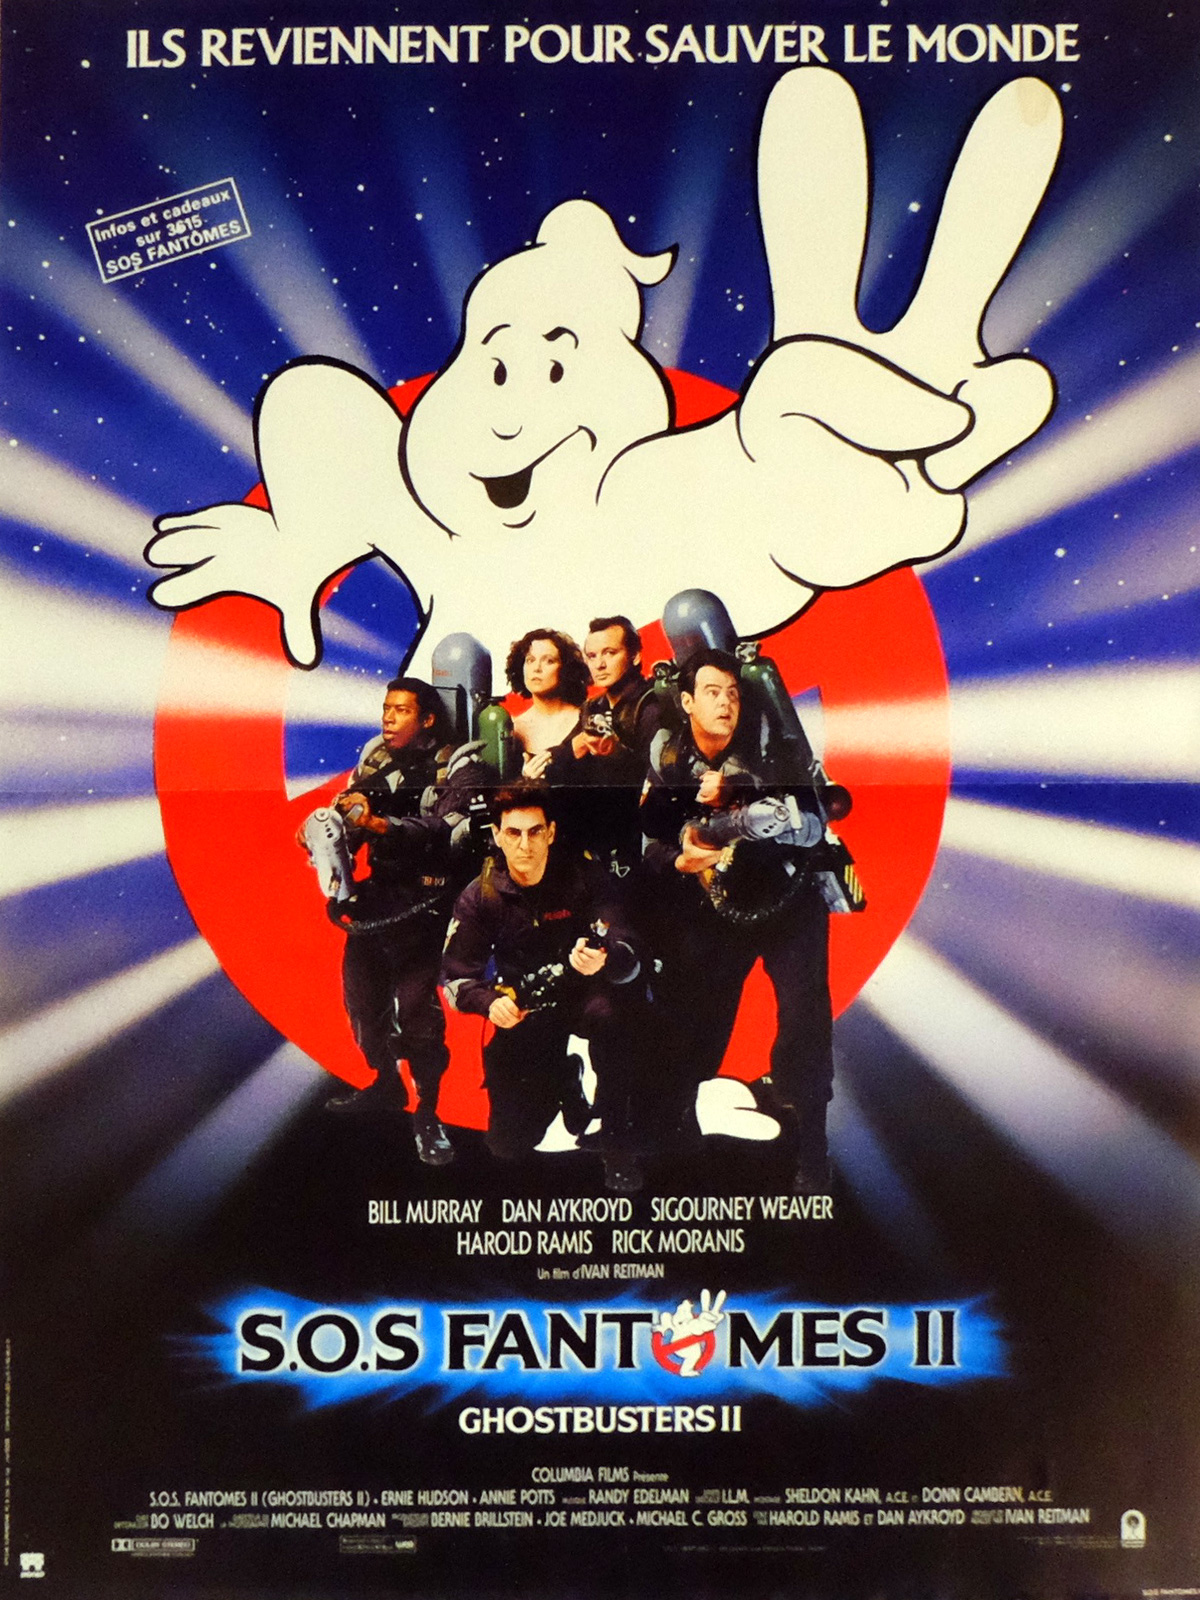 Ghostbusters II French poster